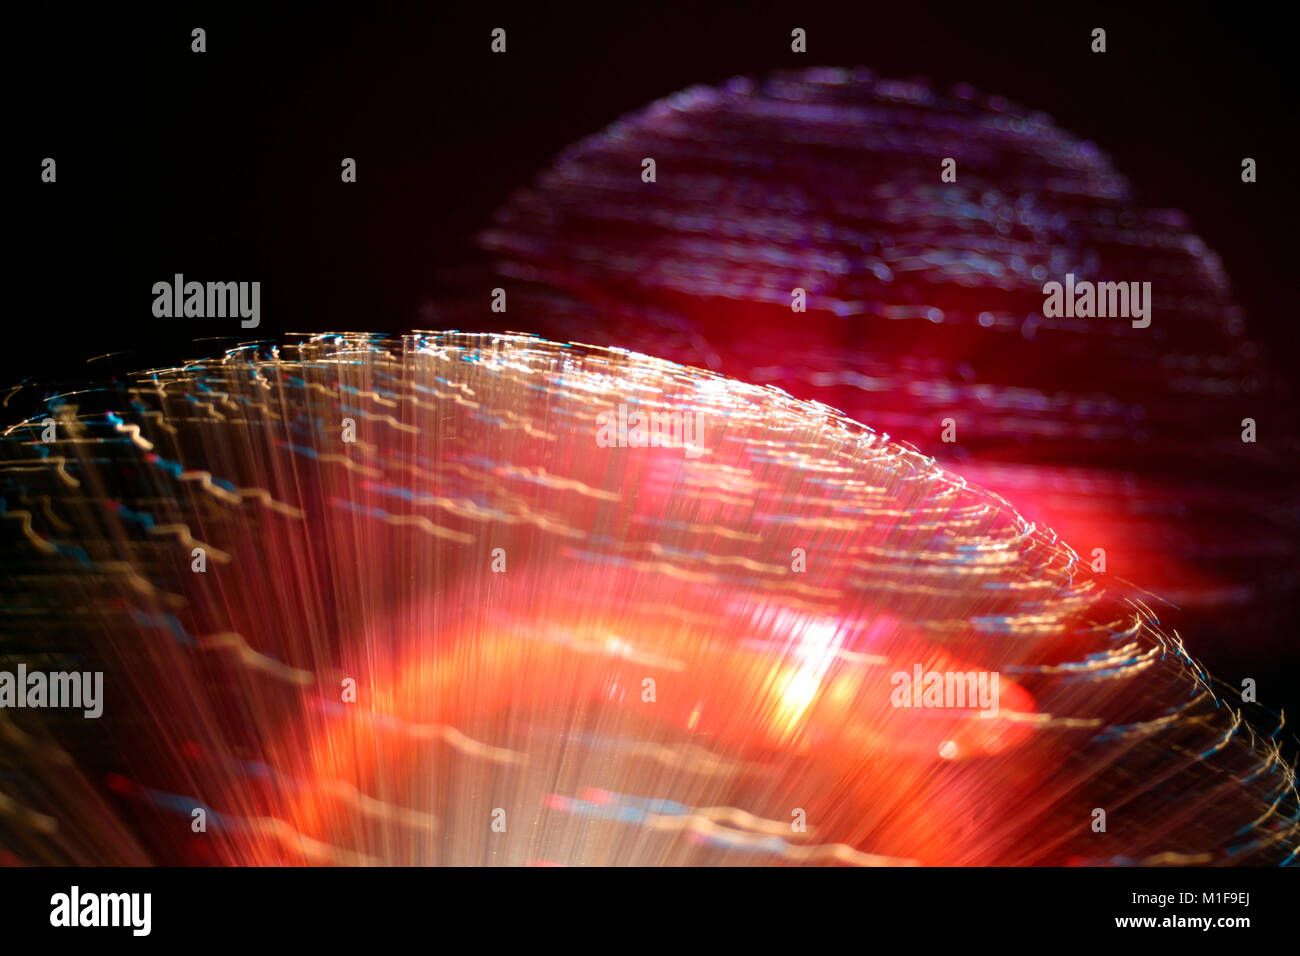 Fibre optic lamps, multi-coloured abstract on black background - Stock Image